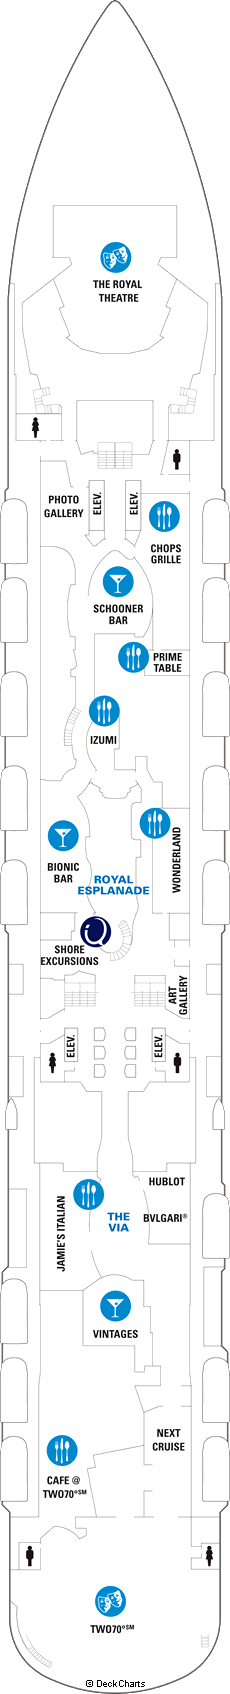 Anthem of the Seas: Deck 5